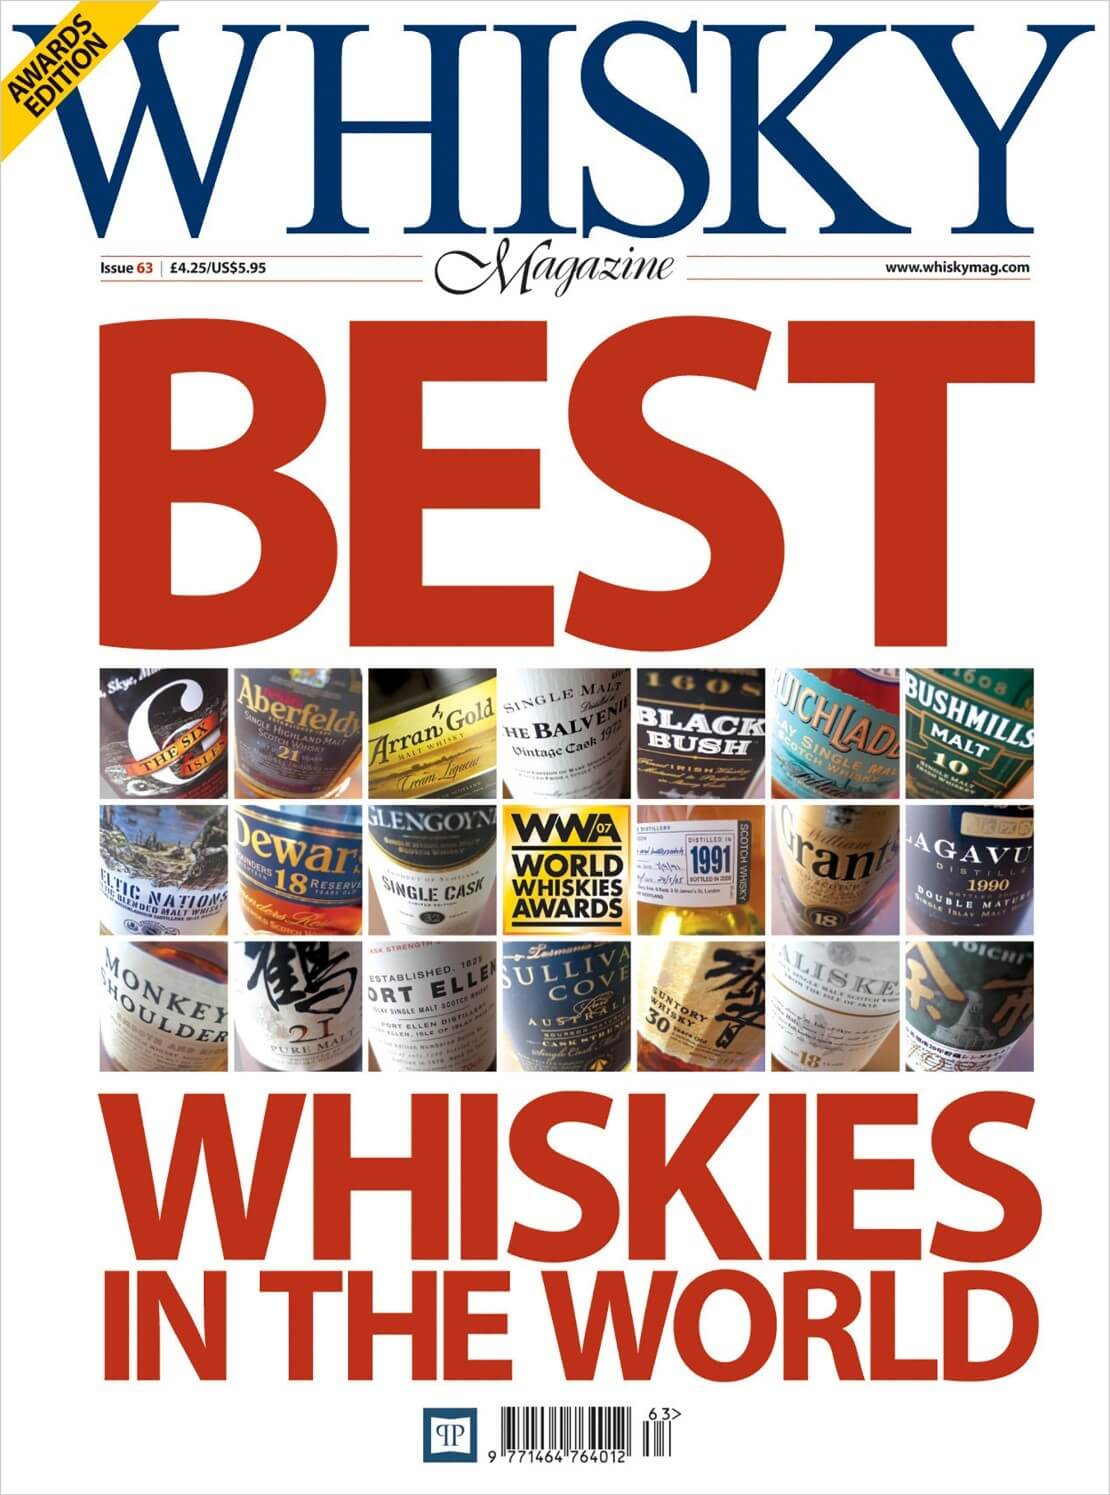 Best Whiskies in the World New distilleries Balblair Vintages Kentucky Visitors Guide Whisky and Food...